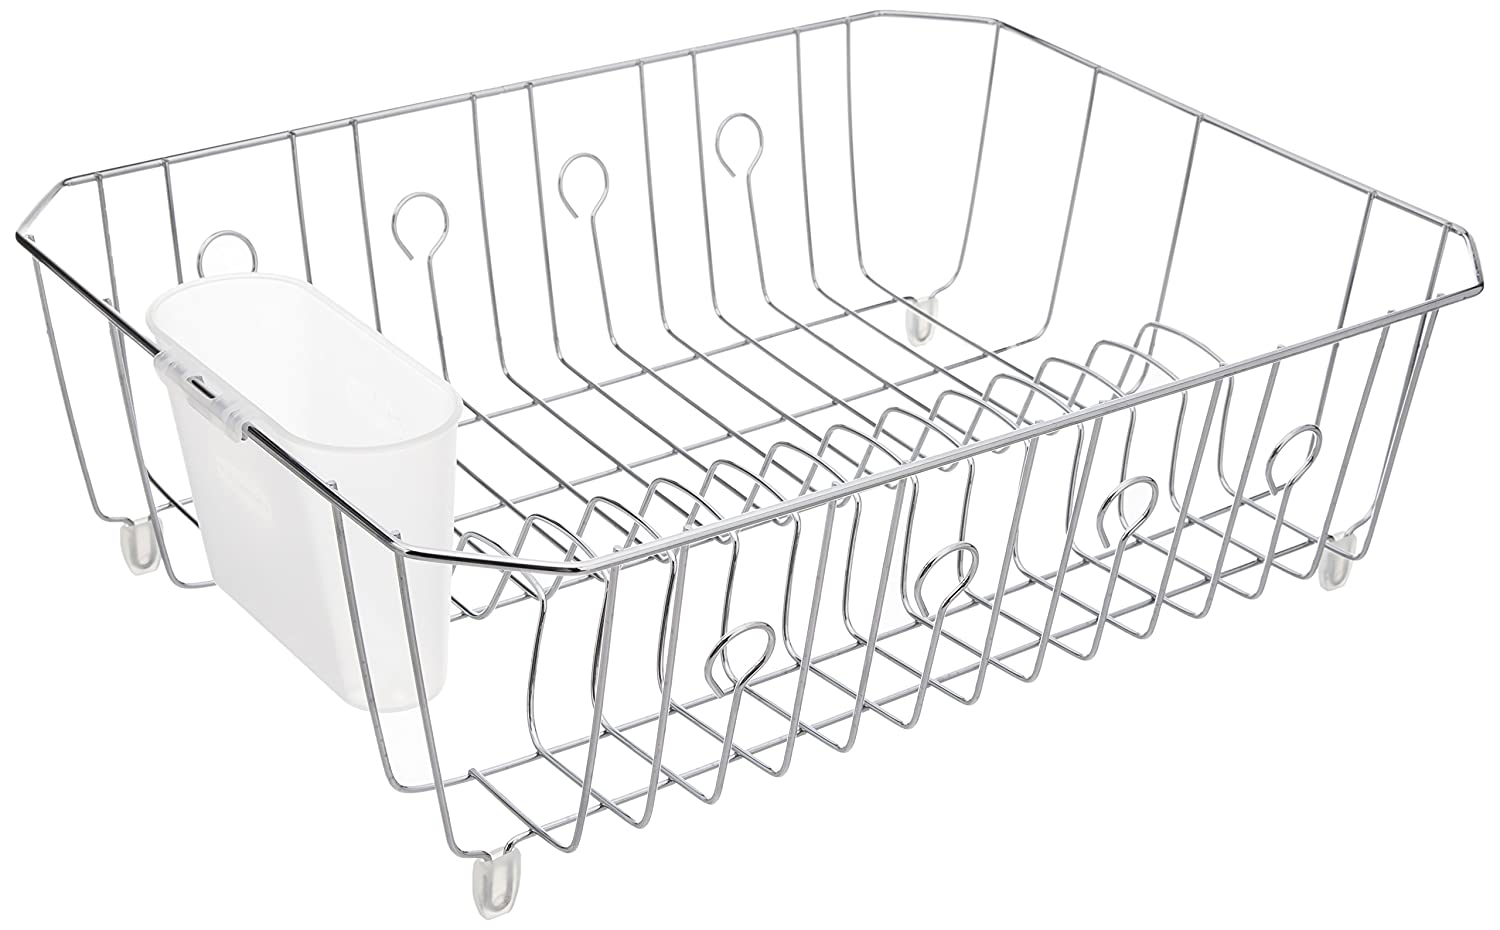 Rubbermaid AntiMicrobial In-Sink Dish Drainer, Bisque, Large (FG6032ARBISQU) RUBBERMAID INC -P